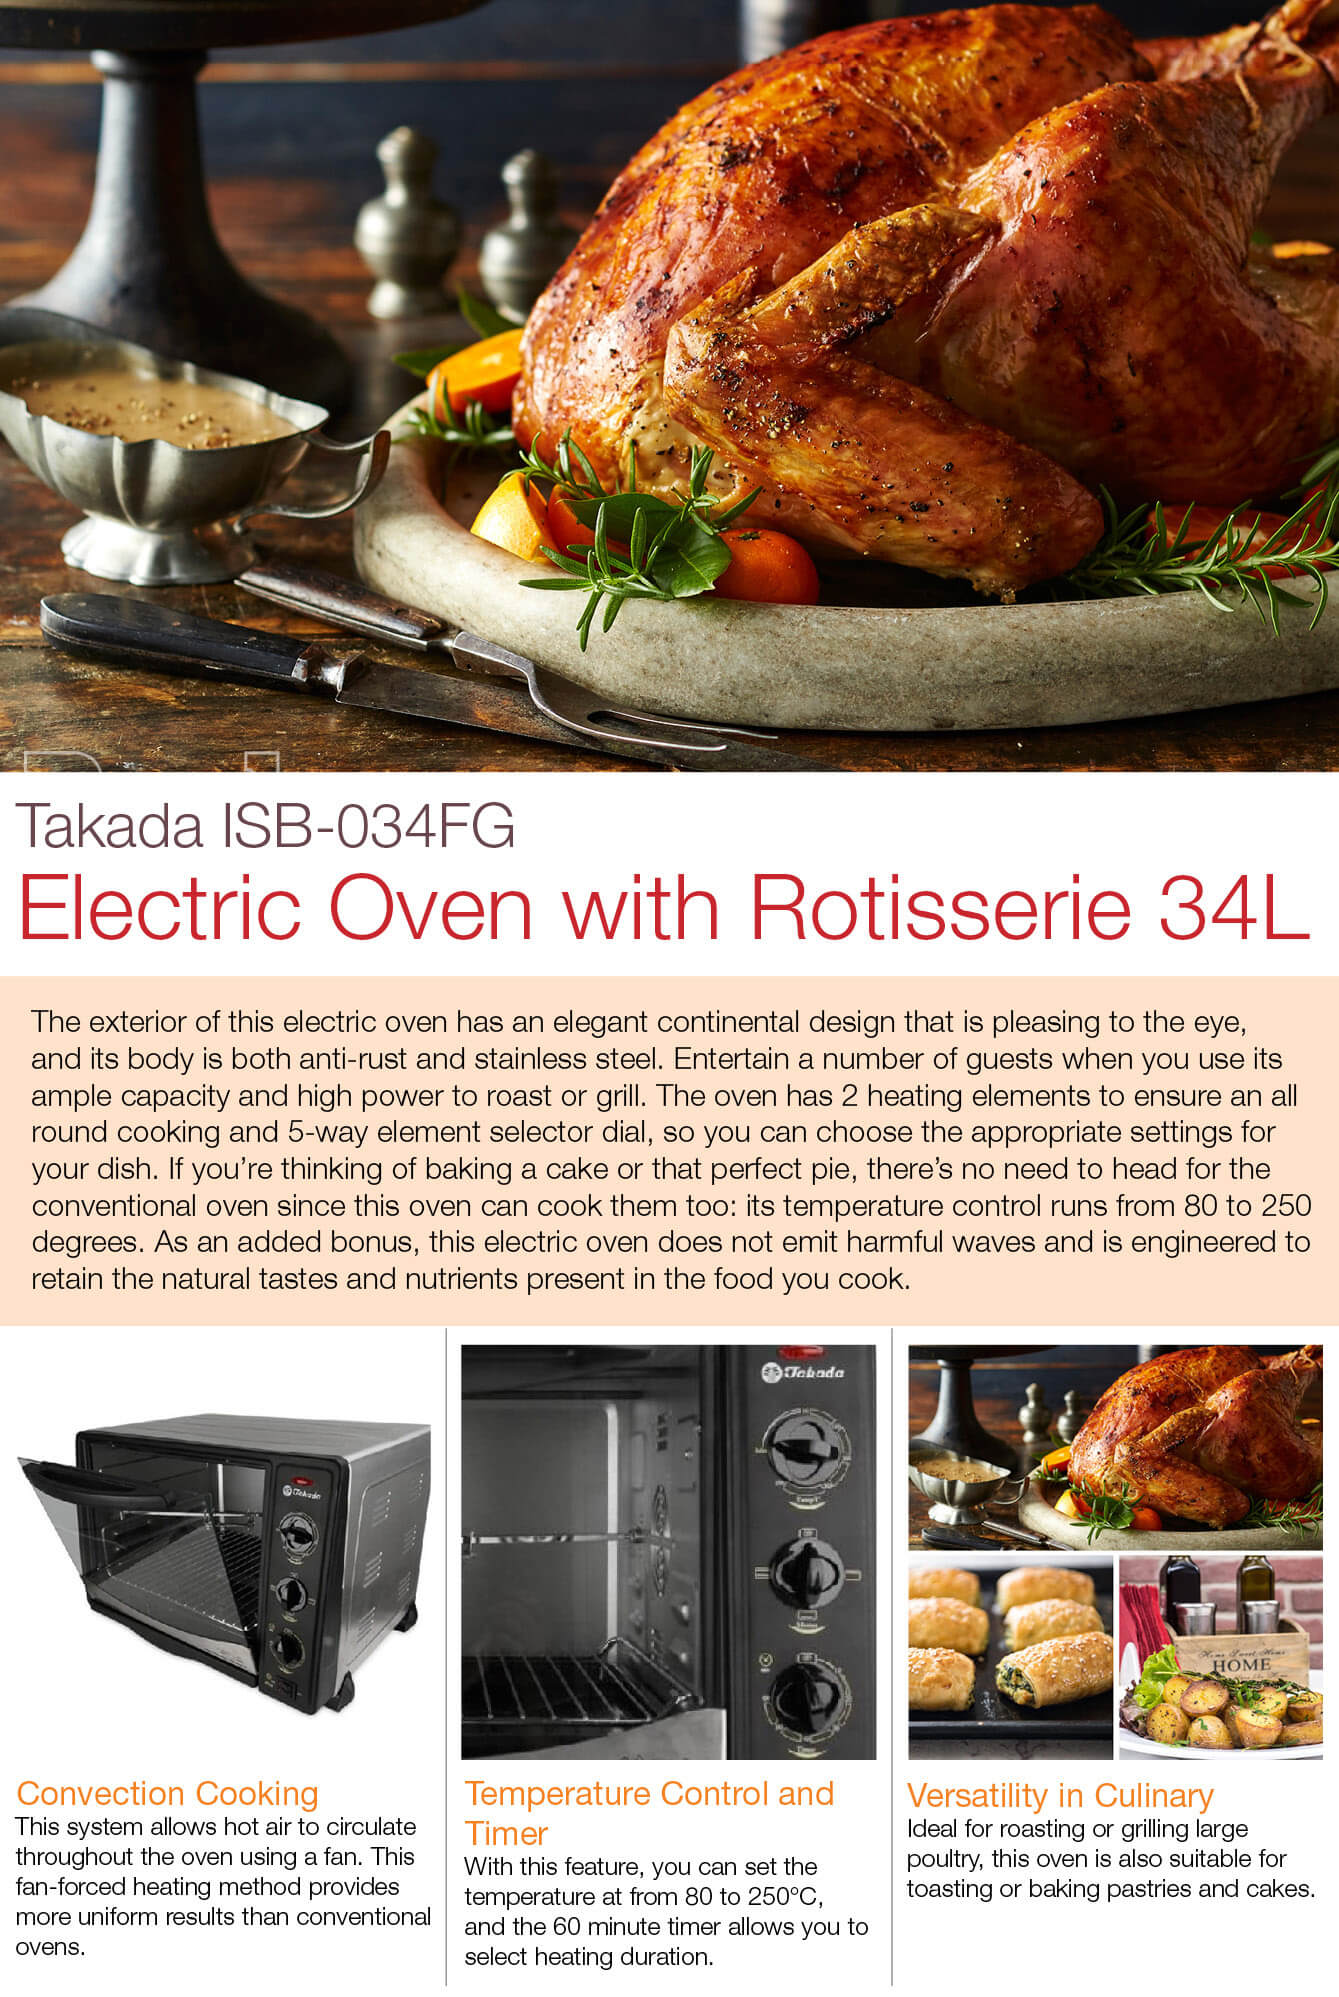 takada-isb-034fg-electric-oven-with-rotisserie